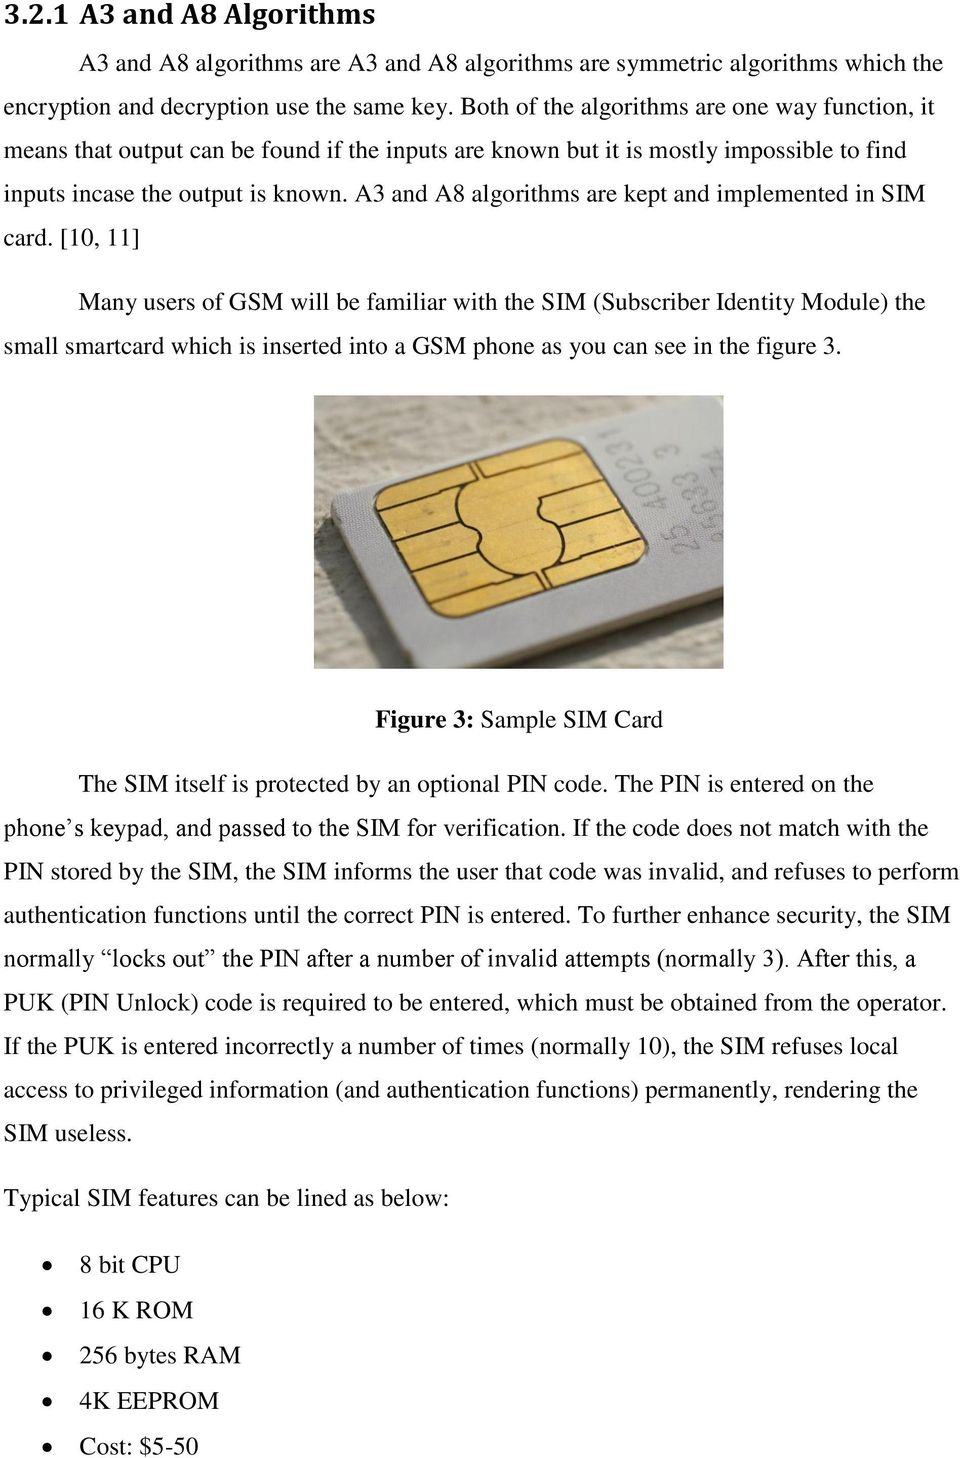 A3 and A8 algorithms are kept and implemented in SIM card.